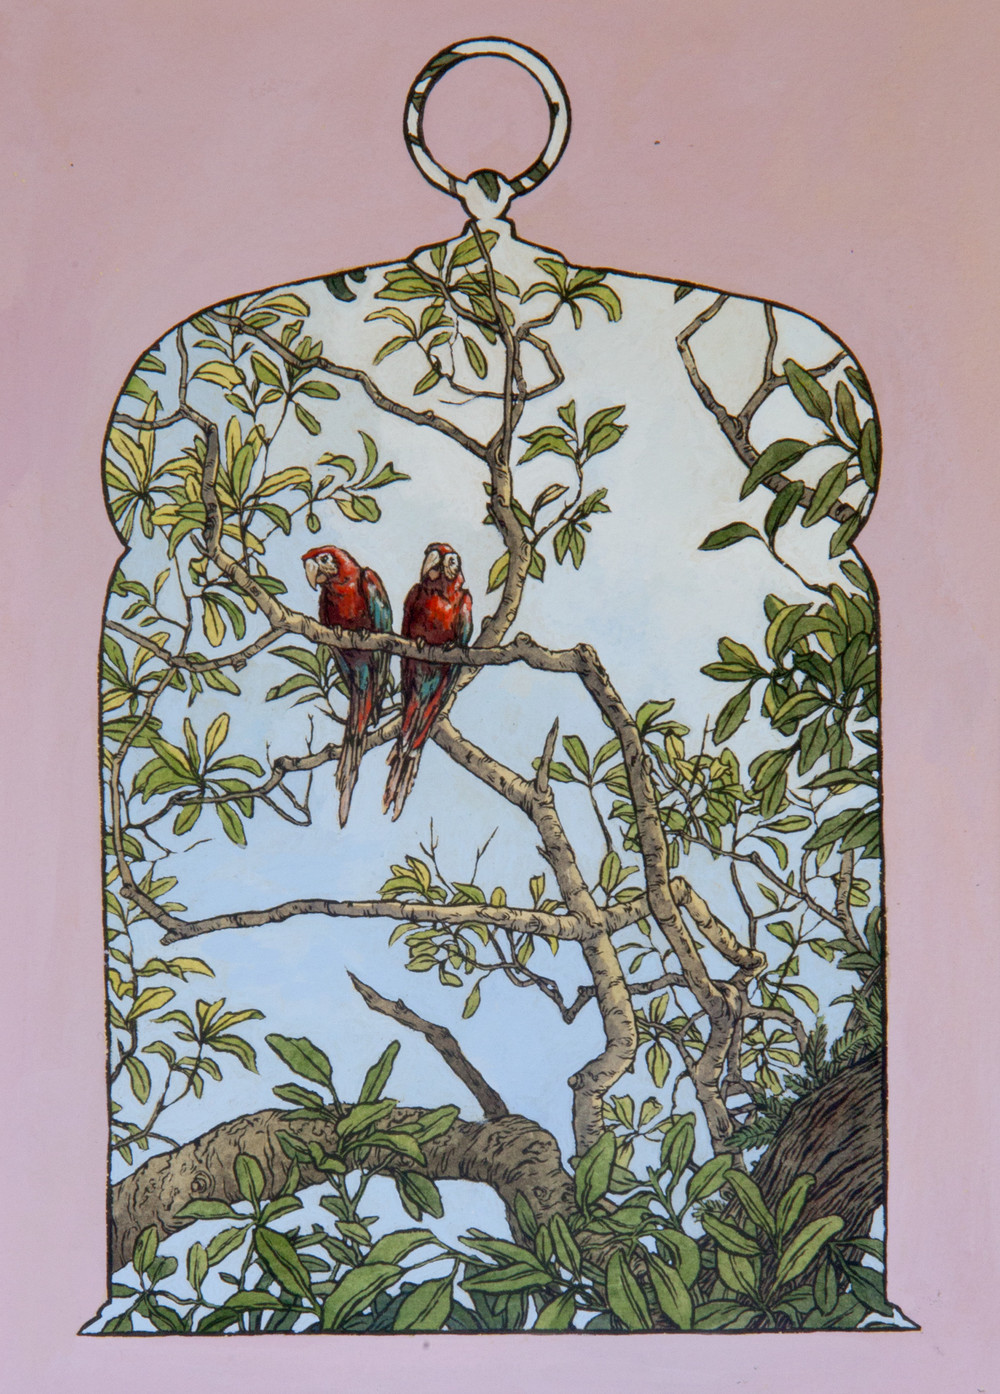 Red and green macaws are often sold as 'captive-bred,' but many of the birds used to breed parrots are actually taken directly from the wild. While their population numbers are high enough to keep them off the endangered species list, they are under increasing pressure from the pet trade. (Emily Poole painting)